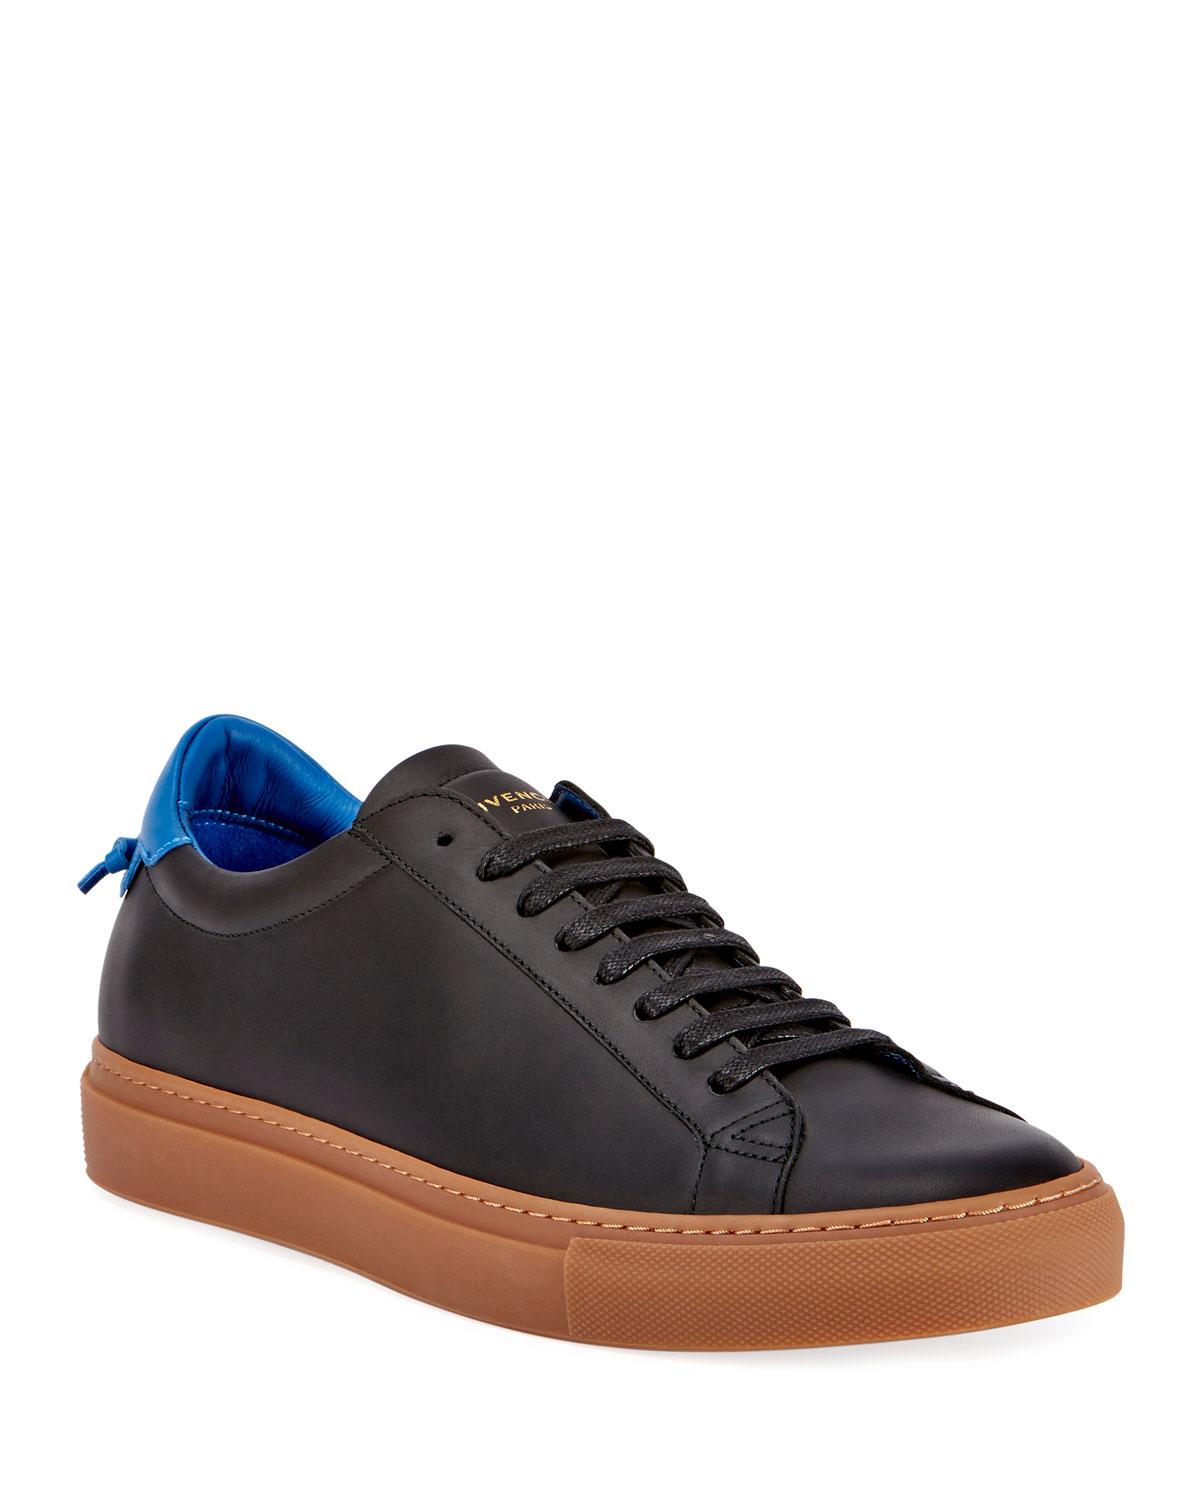 Outlet With Paypal Clearance Mens Mens Urban Knots Suede & Leather Sneakers Givenchy Free Shipping 2018 QP9Yx